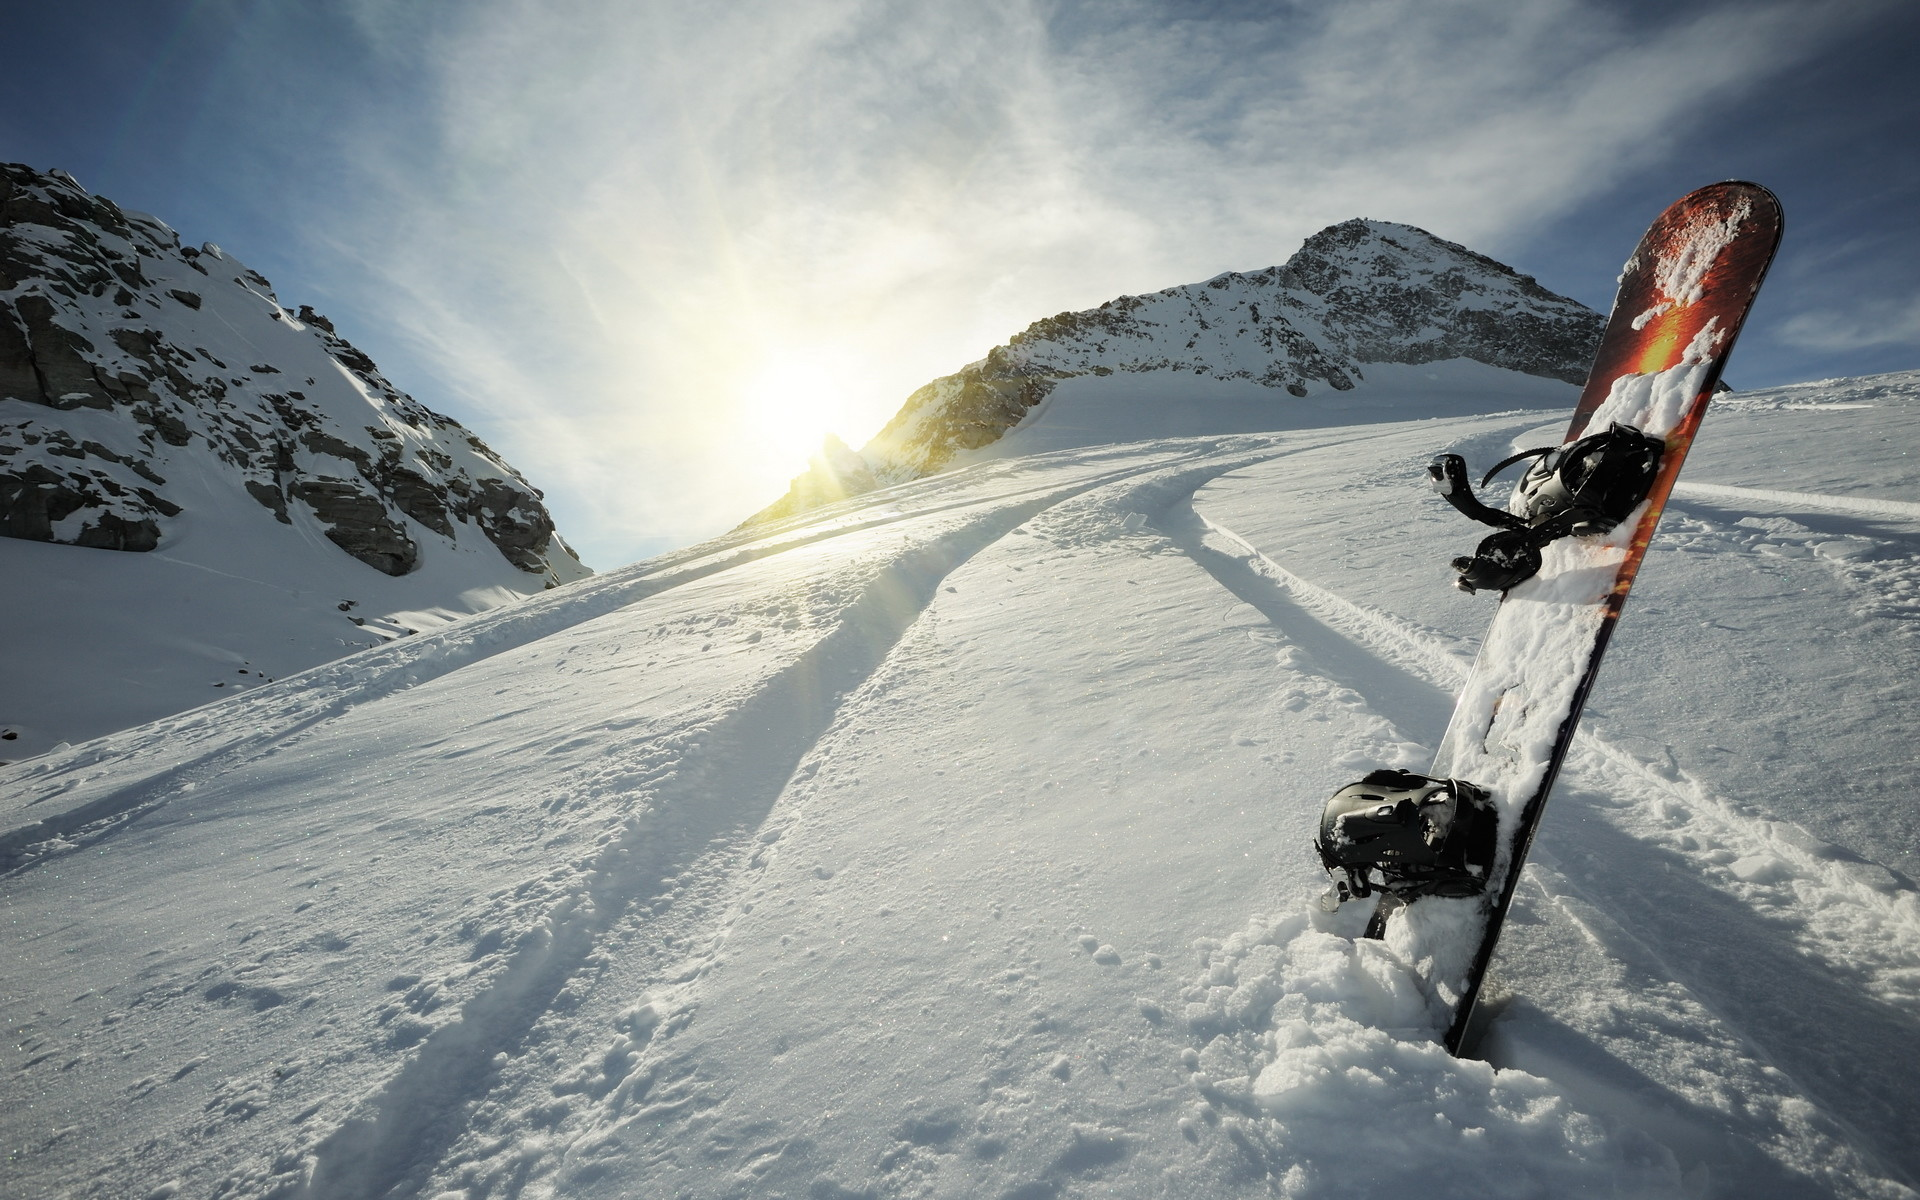 Awesome Snowboarding HD HD Wallpaper Free Download